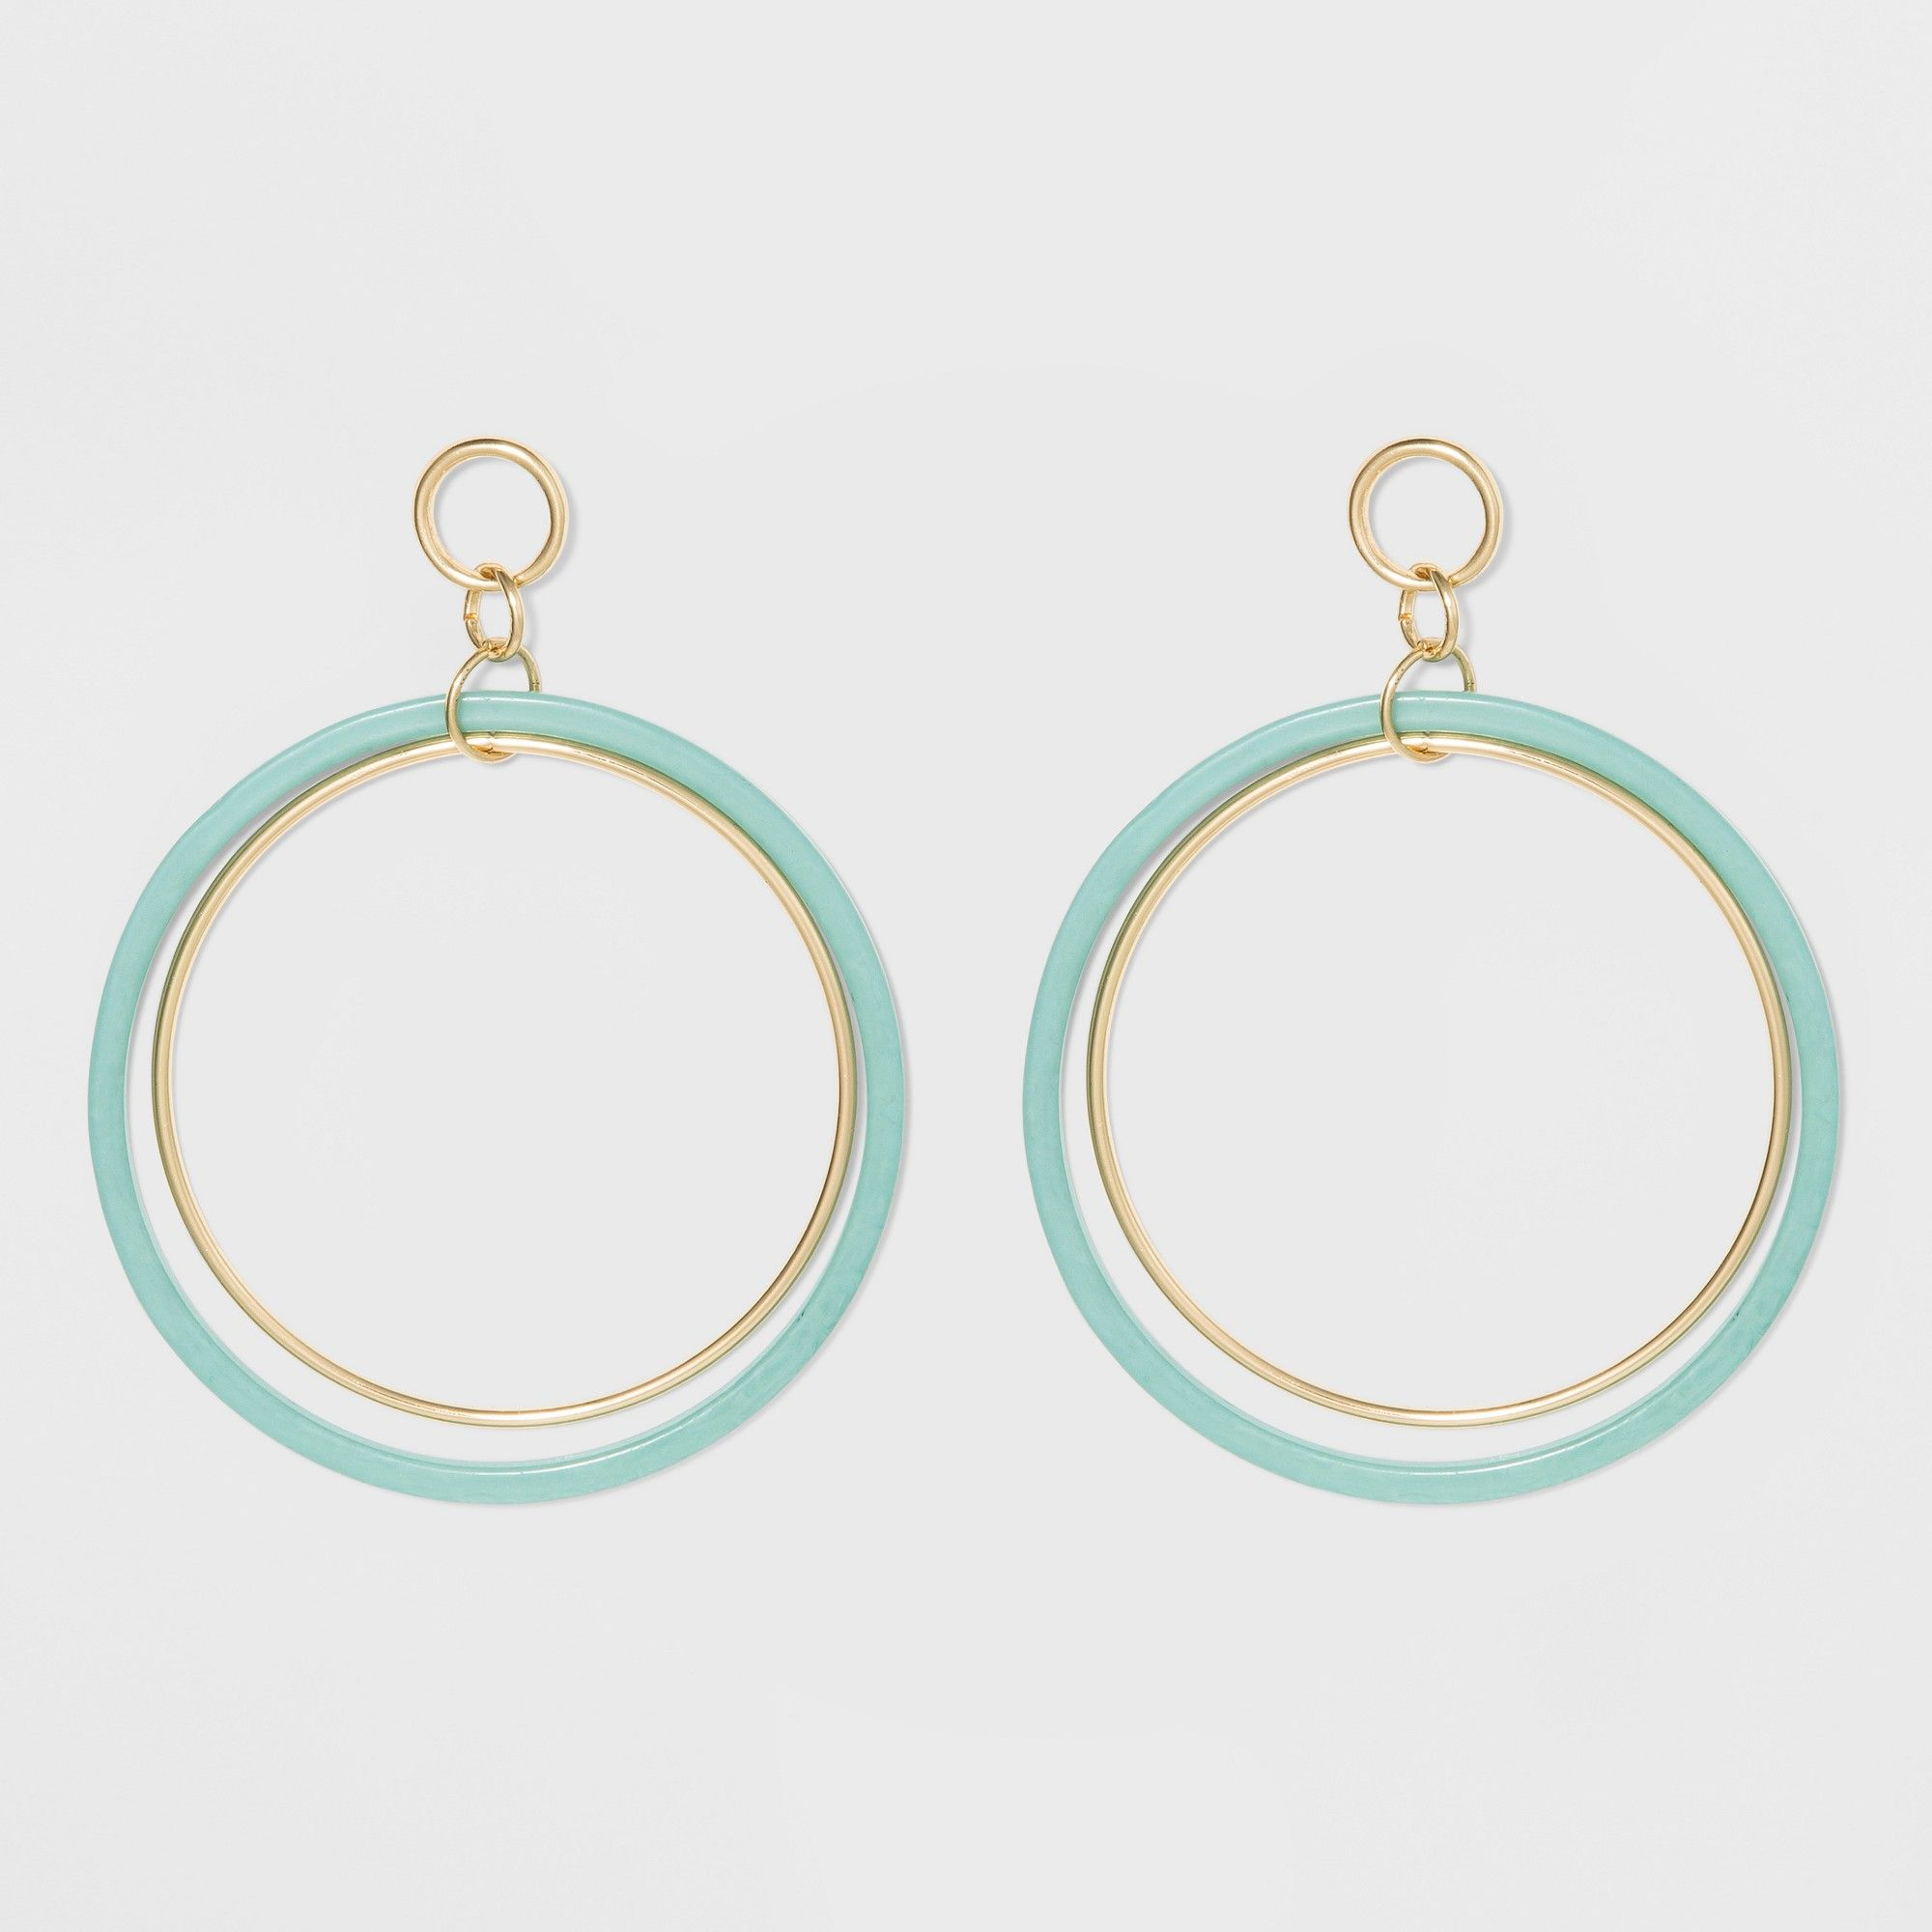 e3b5b3d34ebc2 Large Circle Earrings - A New Day Green/Silver, Women's in 2019 ...